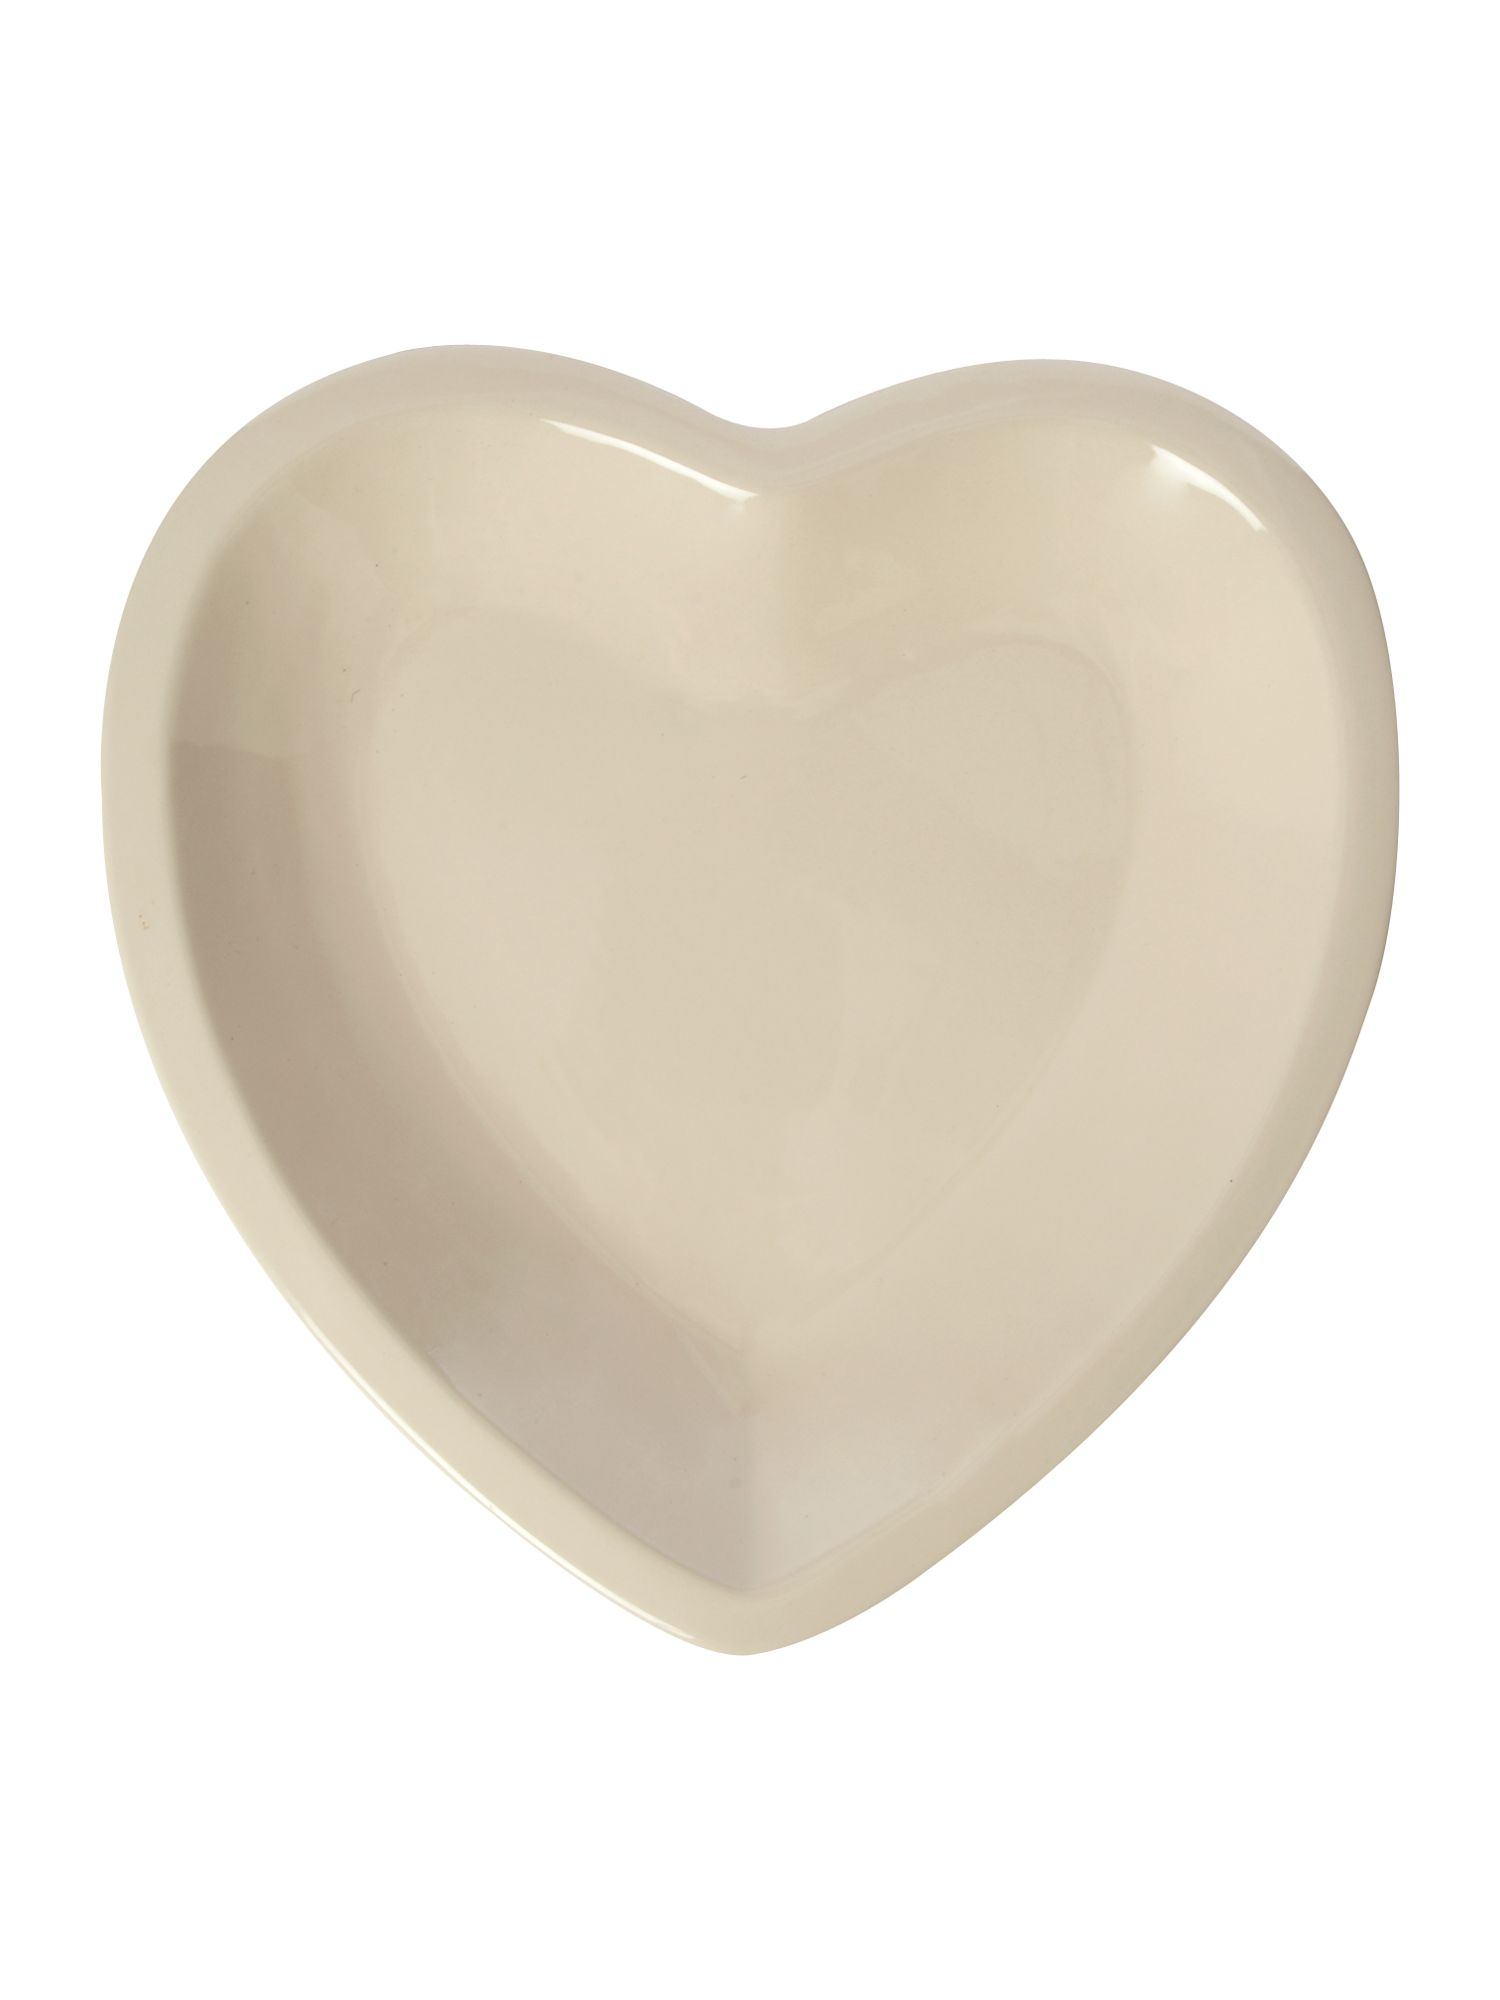 Maison heart dish, cream